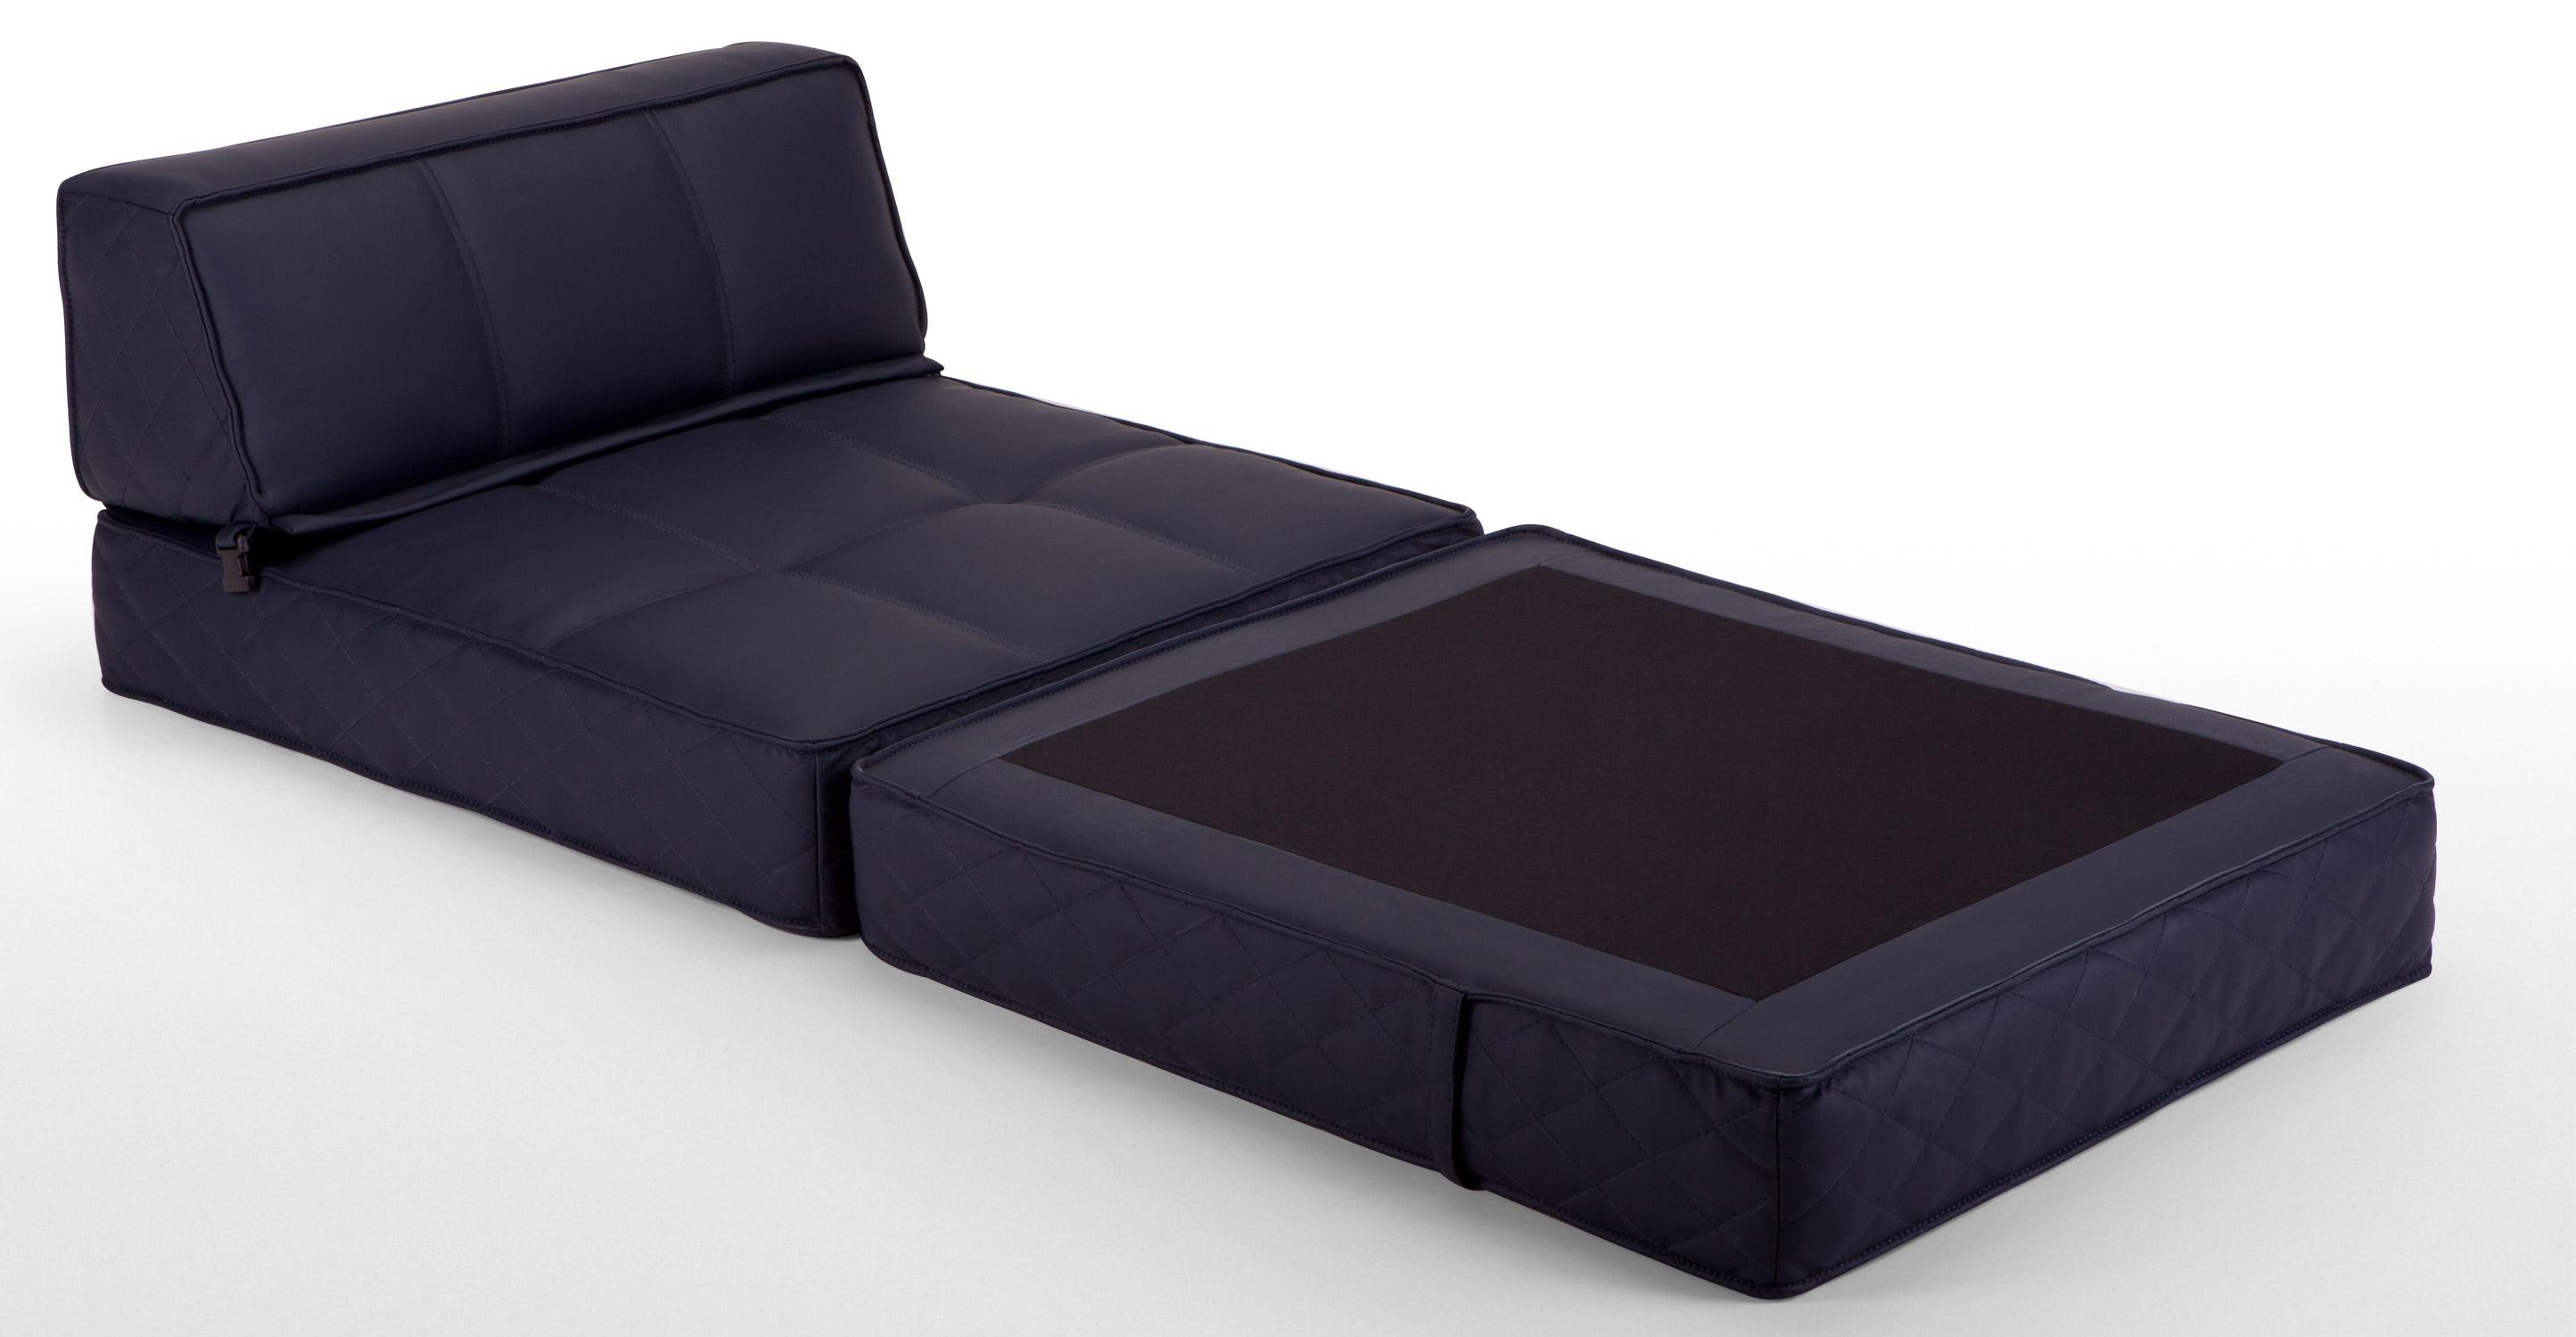 Fold Up Sofa Bed With Regard To Fold Up Sofa Chairs (View 6 of 22)